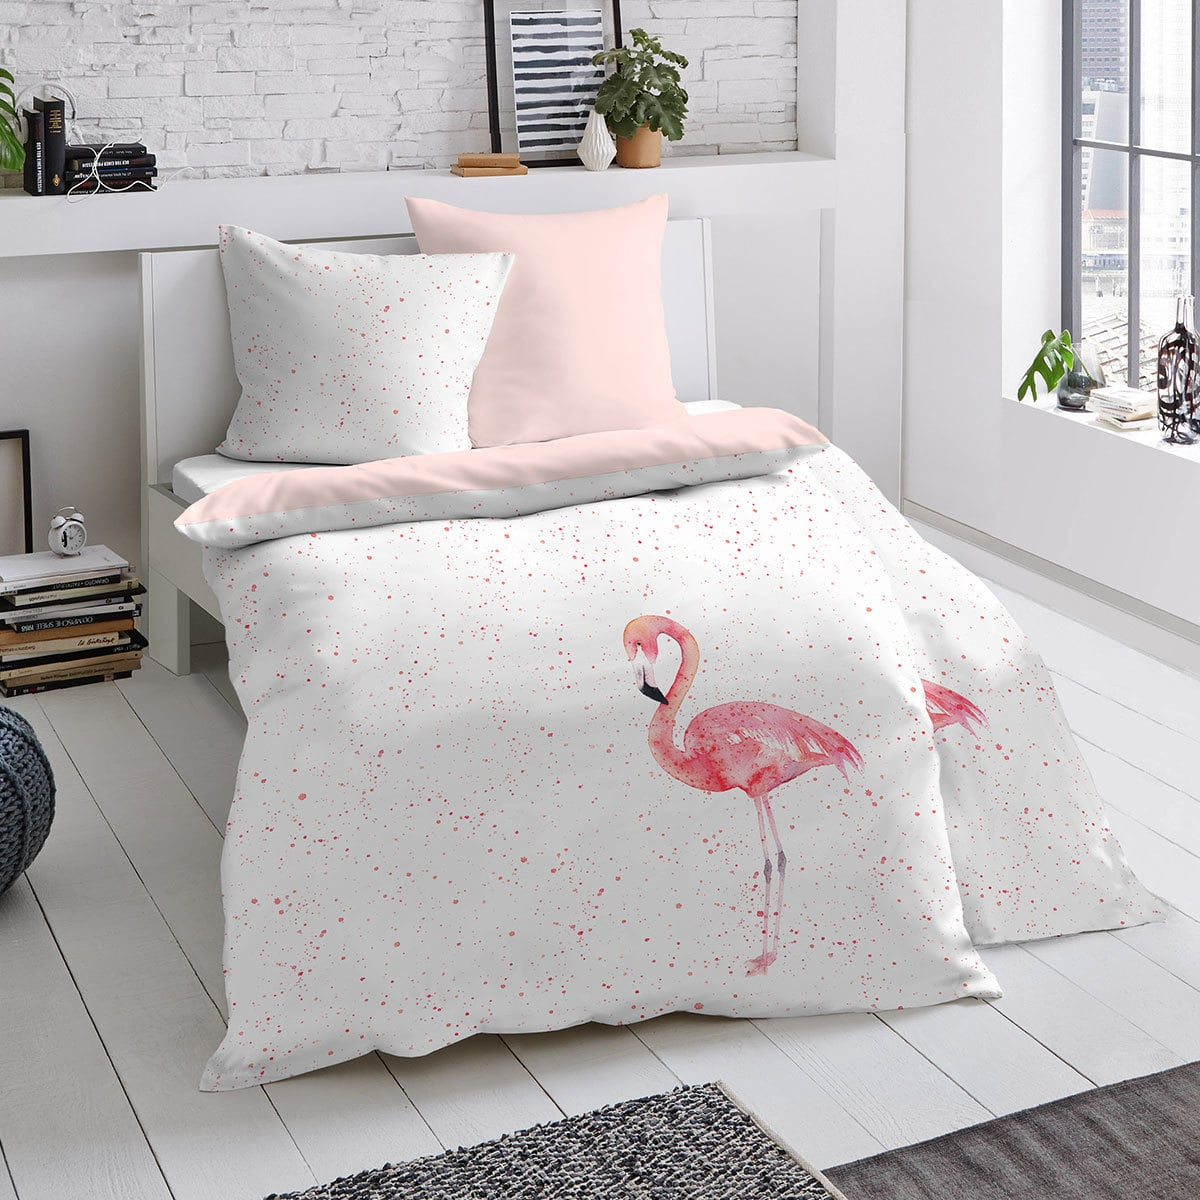 dormisette mako satin bettw sche flamingo g nstig online kaufen bei bettwaren shop. Black Bedroom Furniture Sets. Home Design Ideas